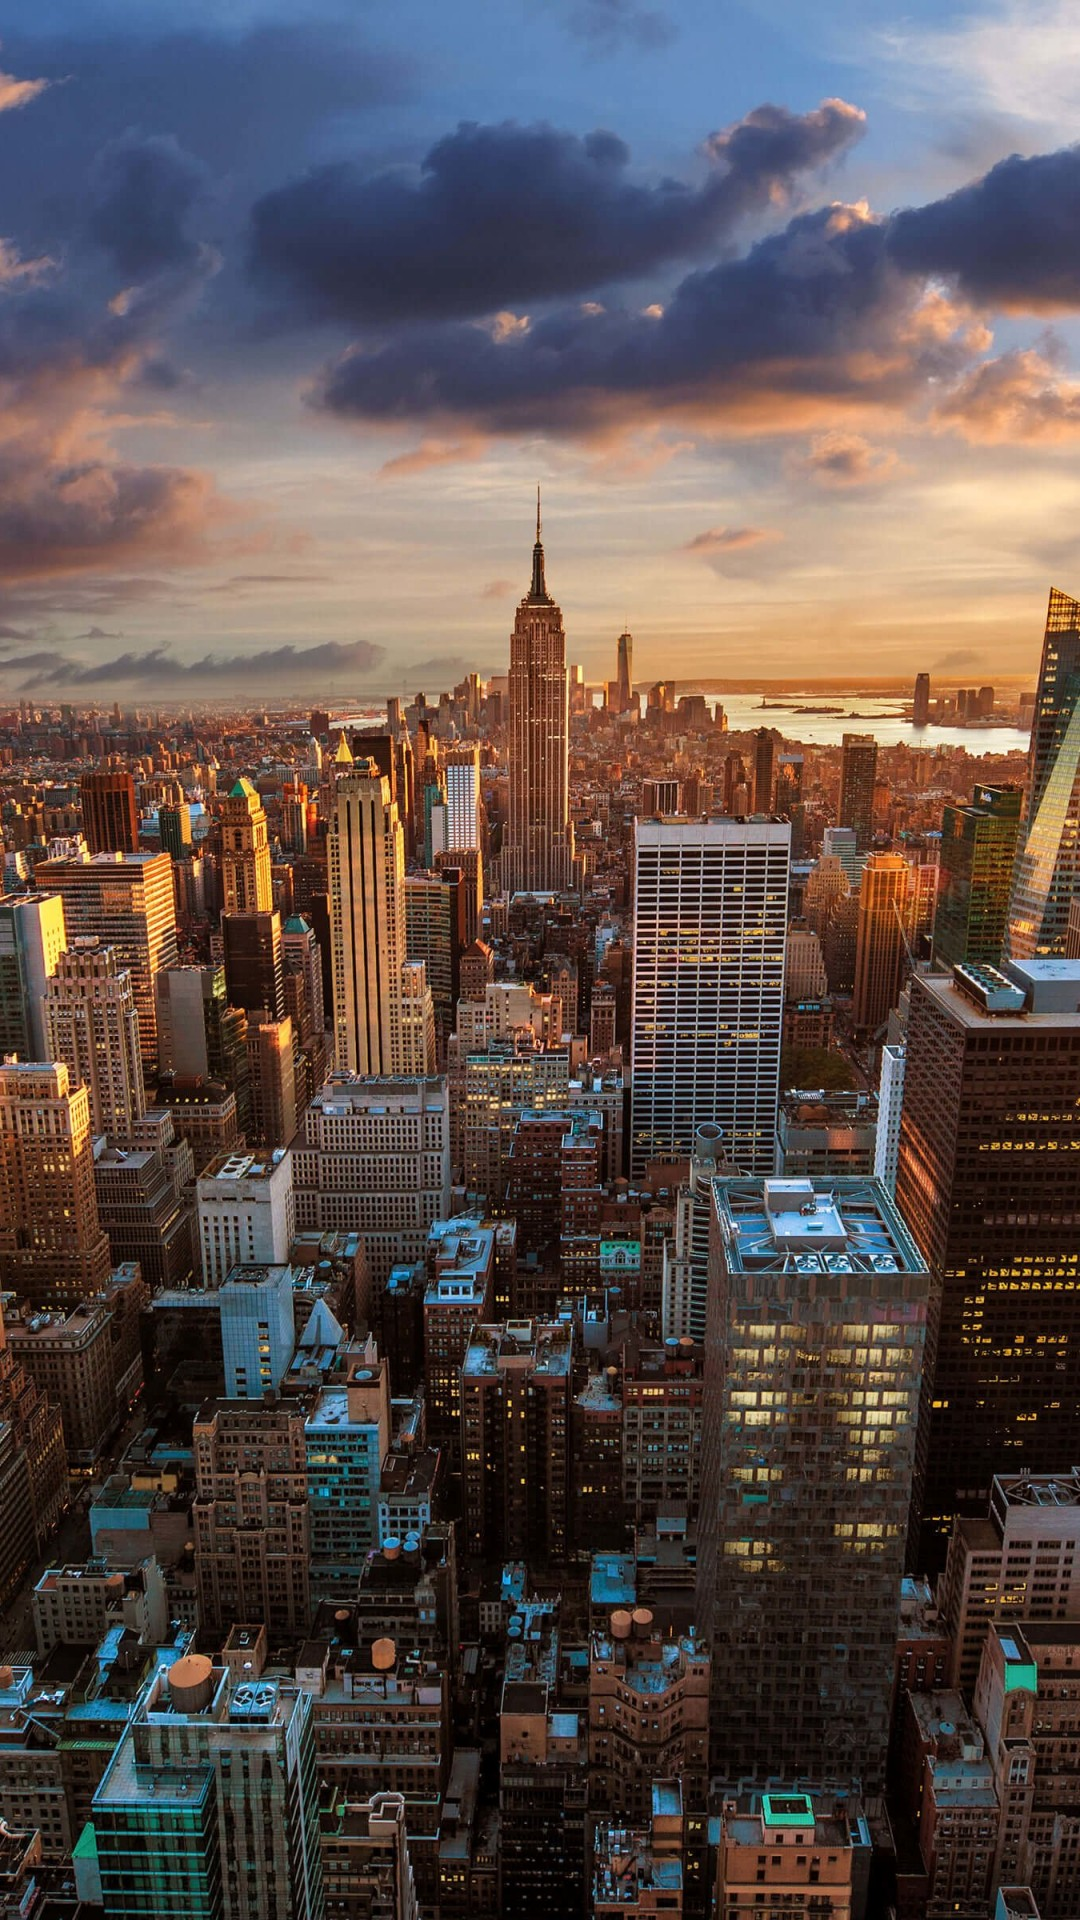 New York City Skyline At Sunset Wallpaper for SONY Xperia Z1